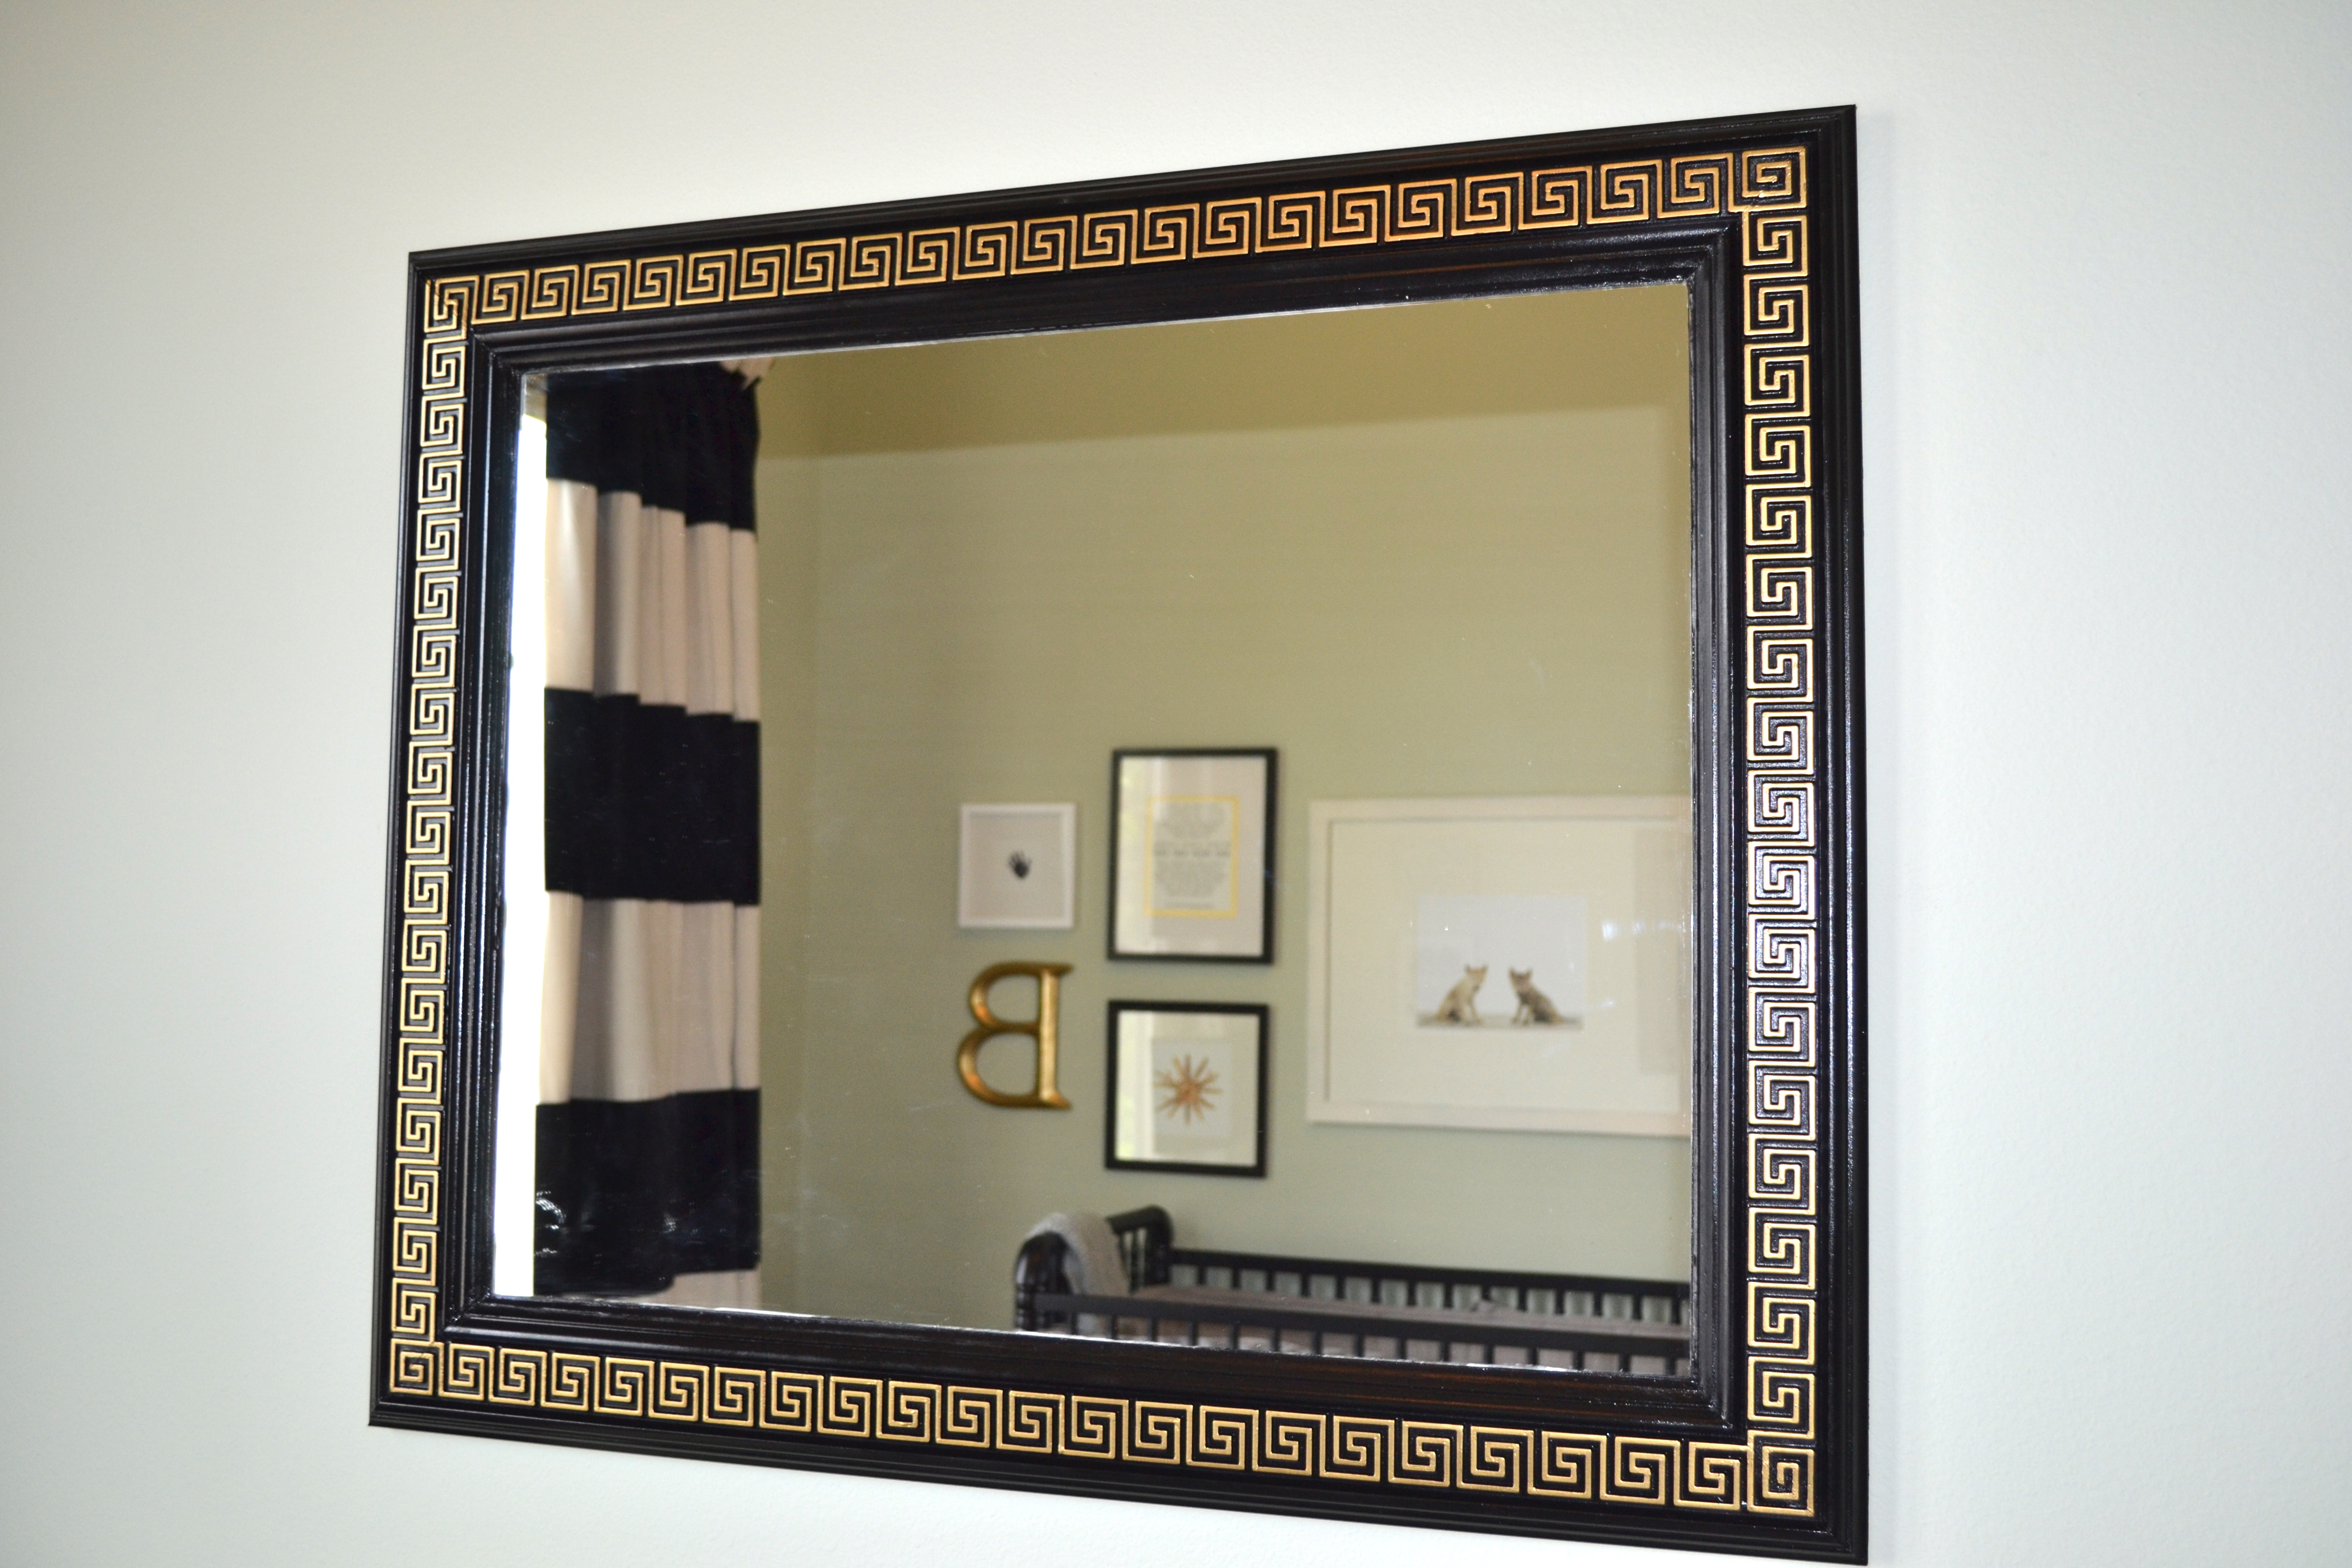 Diy greek key mirror i spent about 40 on the chair rail 15 on the mirror and 25 on the plywood paint liquid nails and caulk for a total of 80 for a 3036 greek key jeuxipadfo Choice Image